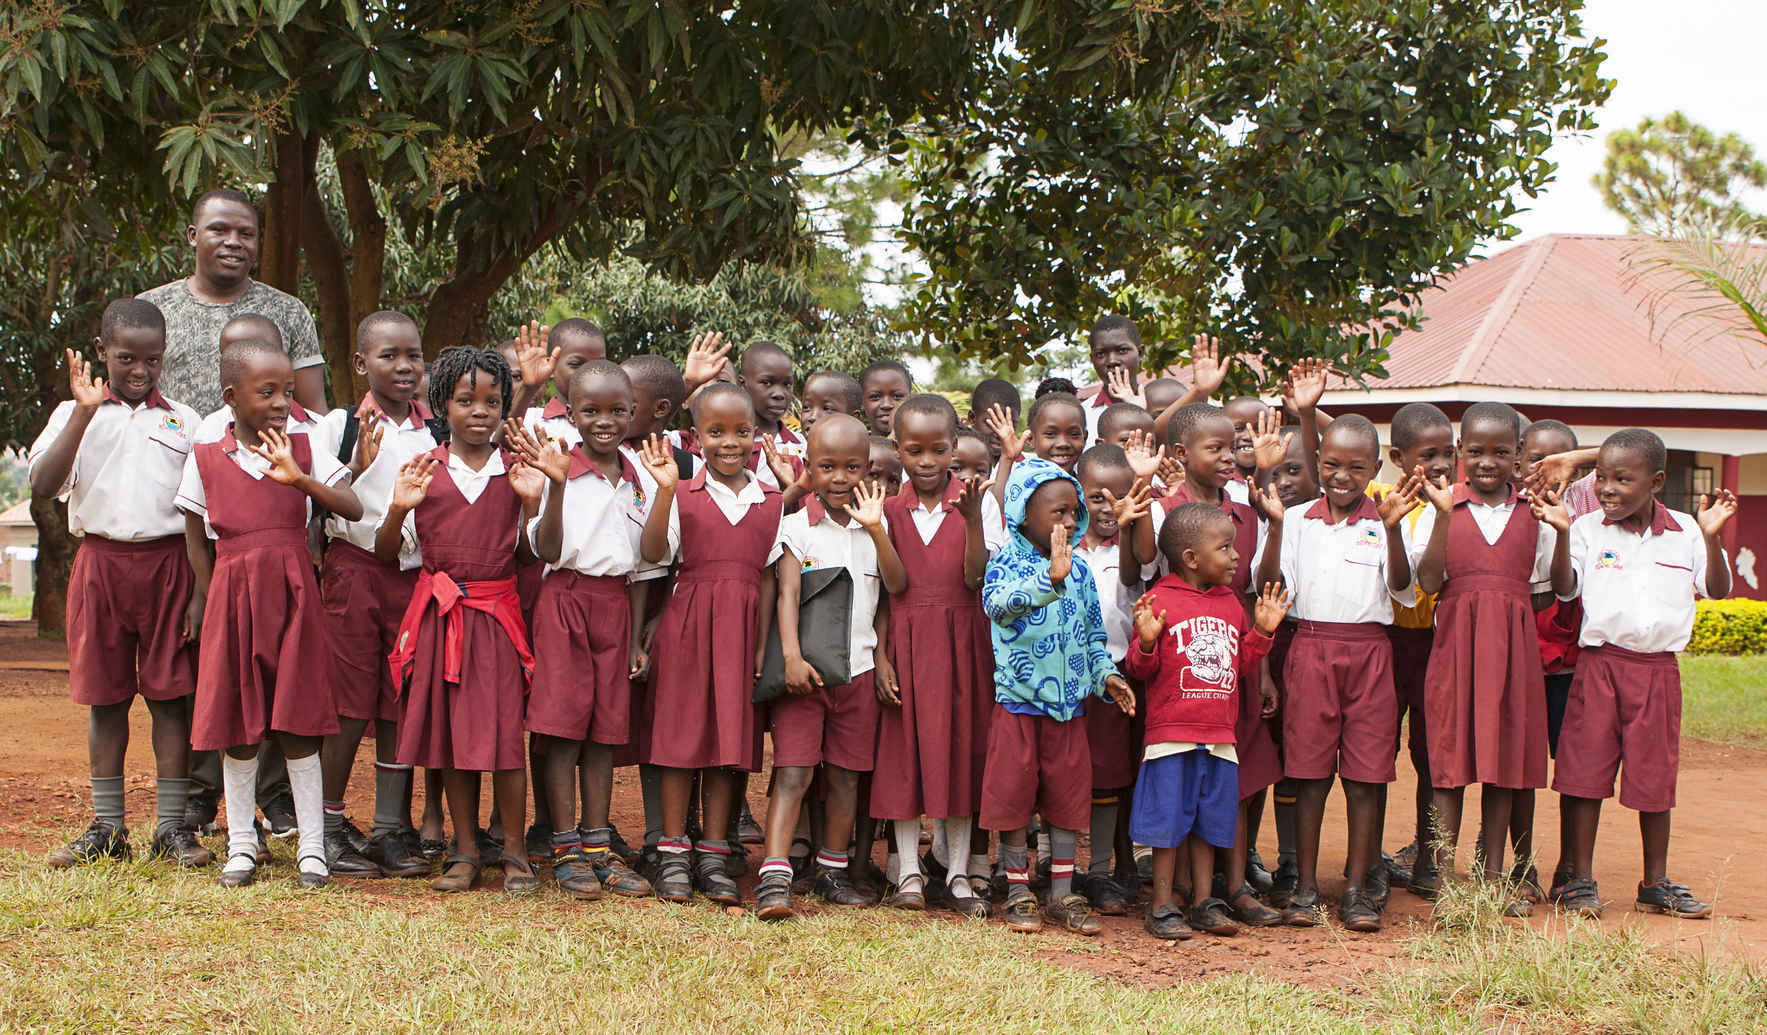 Give today to assist vulnerable children in Uganda image